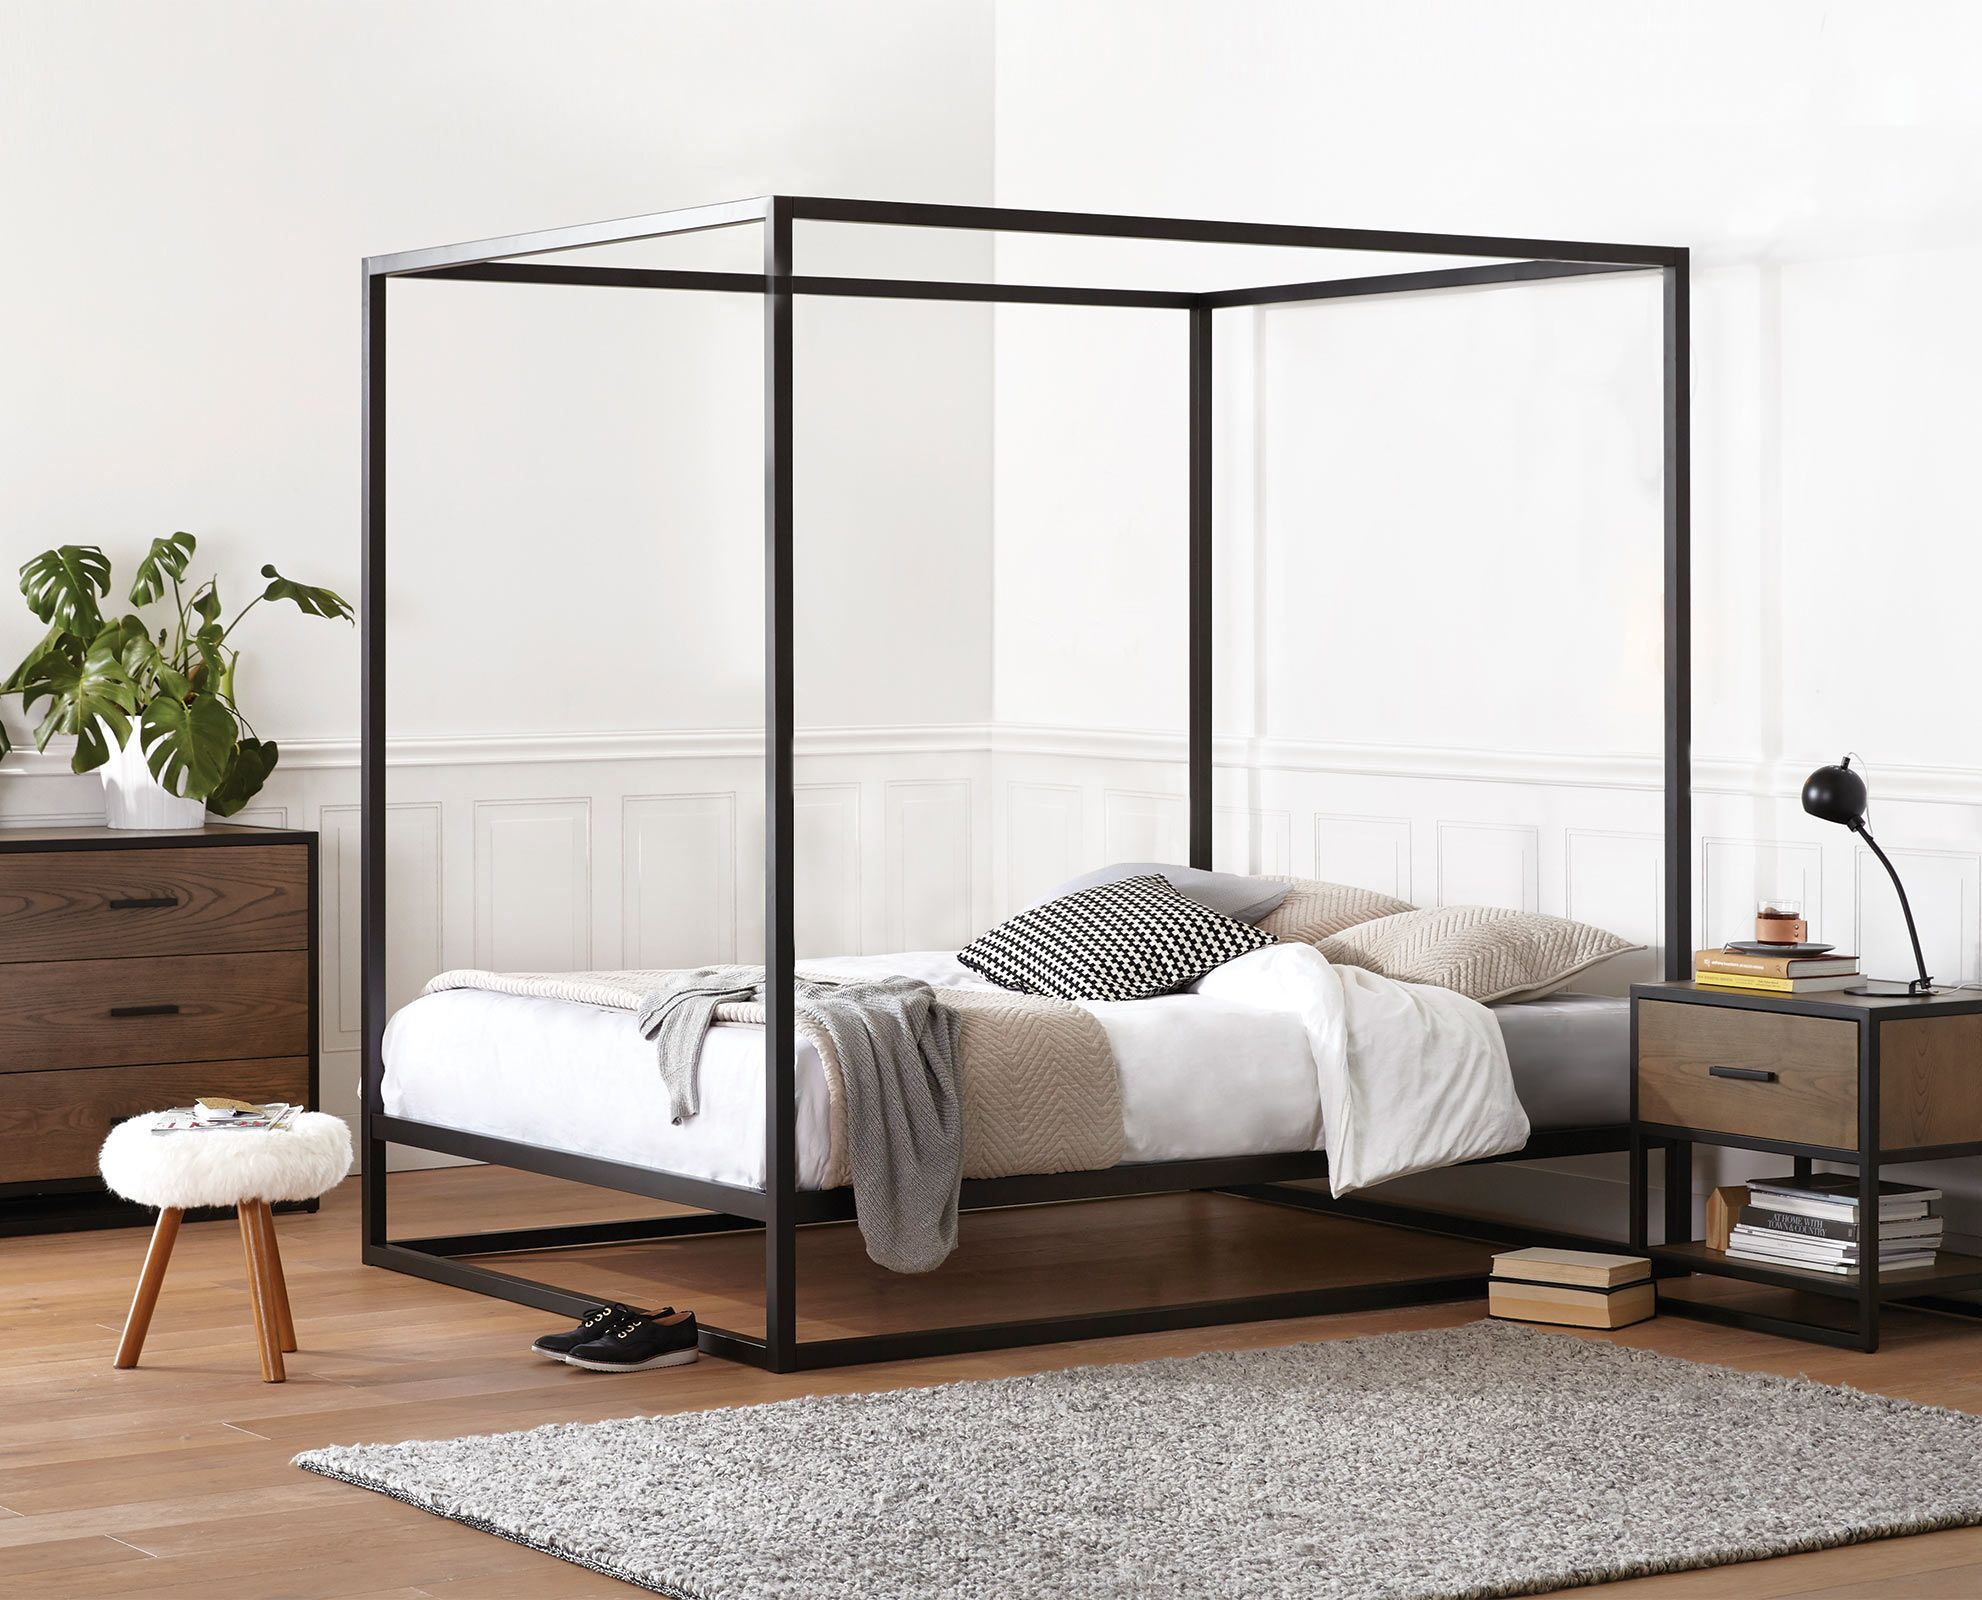 Oppet Bed by Scandinavian Designs. Enjoy the romantic style of the Oppet  canopy bed, adding height and dimension to your bedroom space.